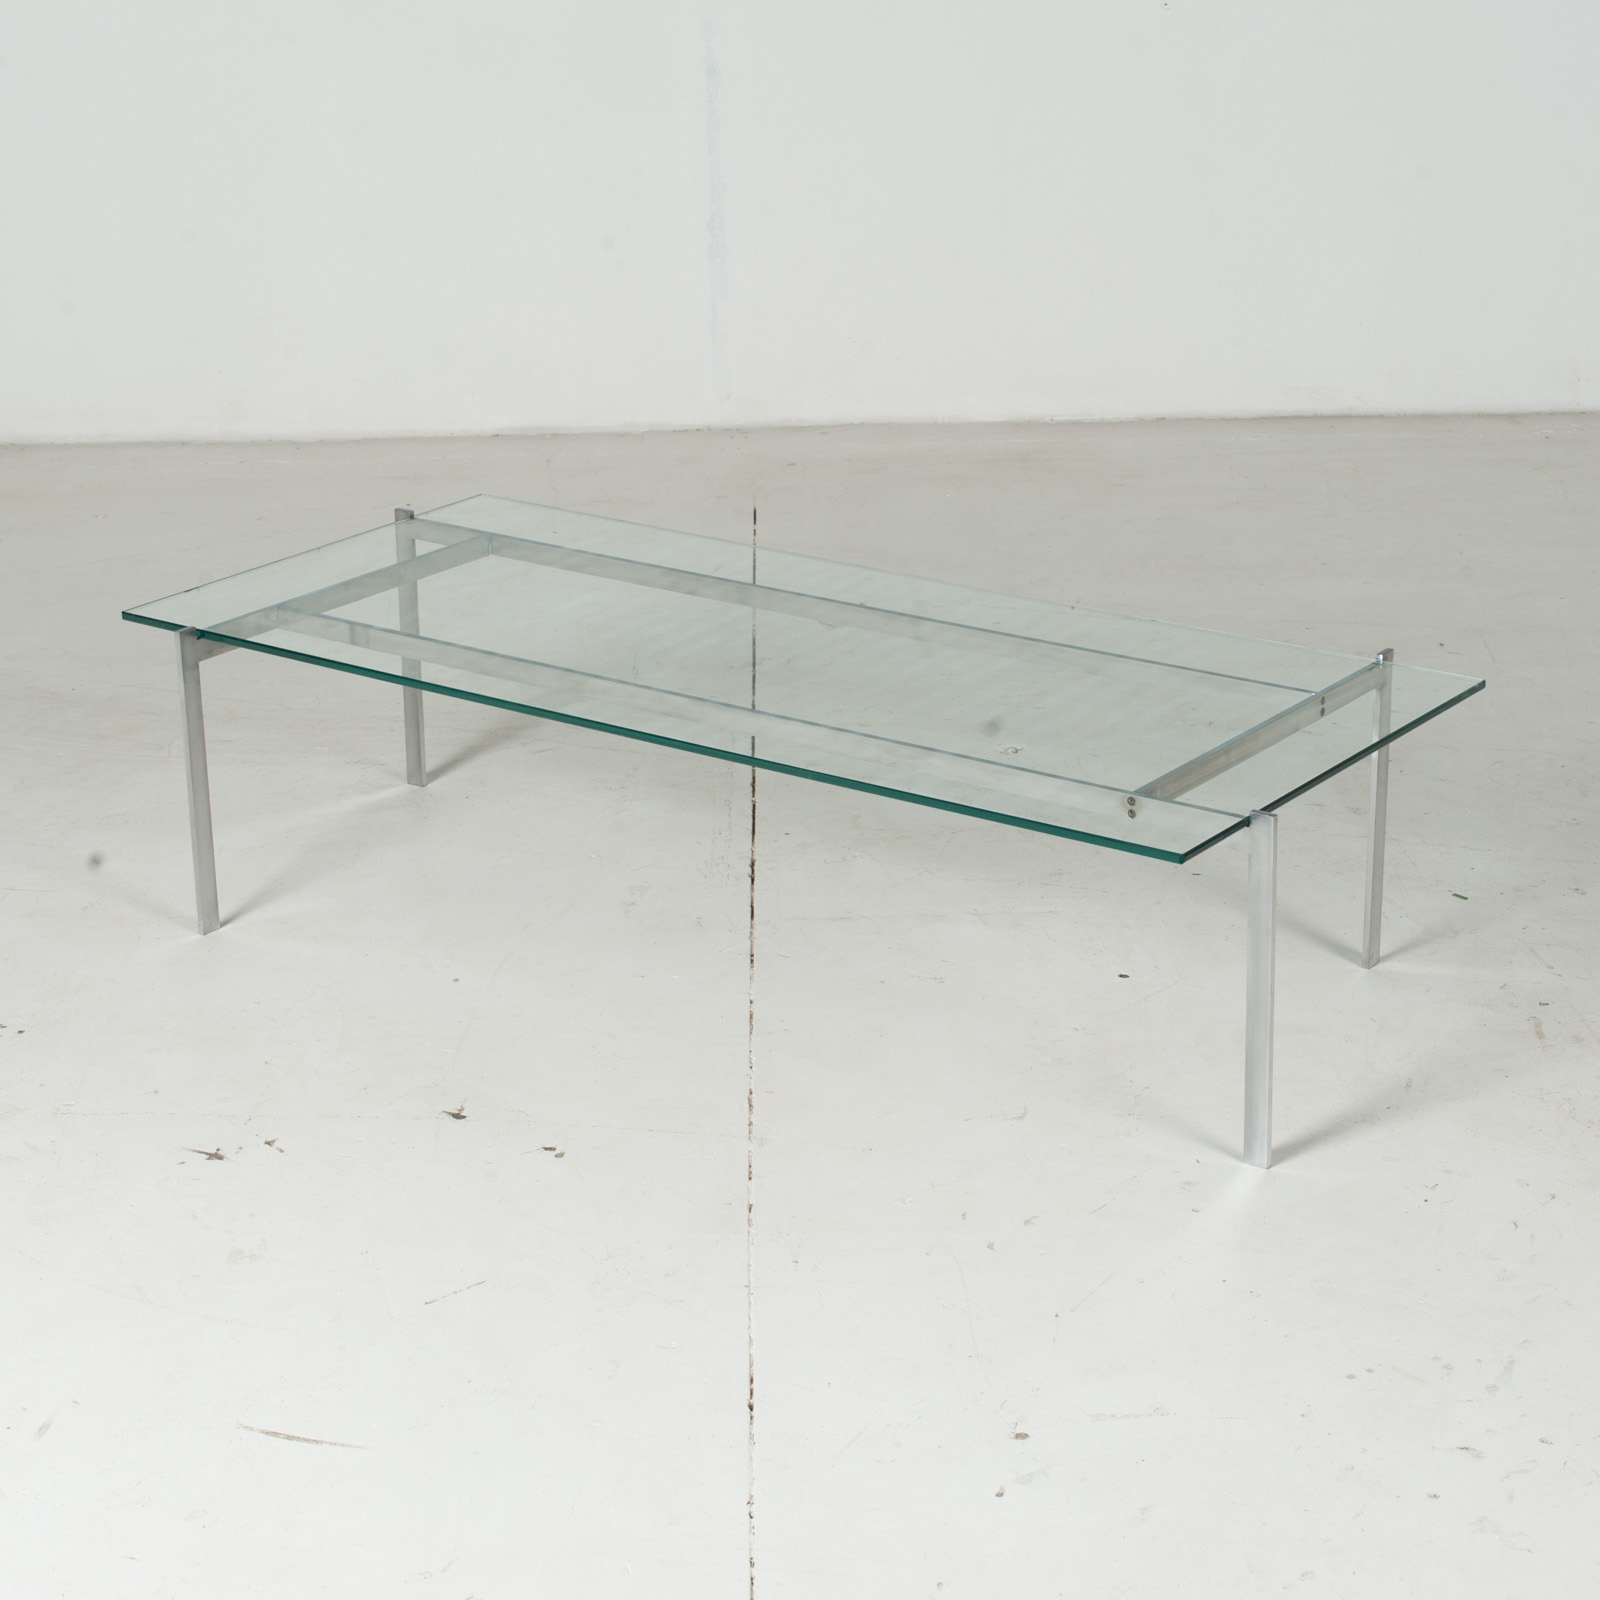 Coffee Table In The Style Of Poul Kjaerholm With Chrome And Glass, 1960s, Netherlands4